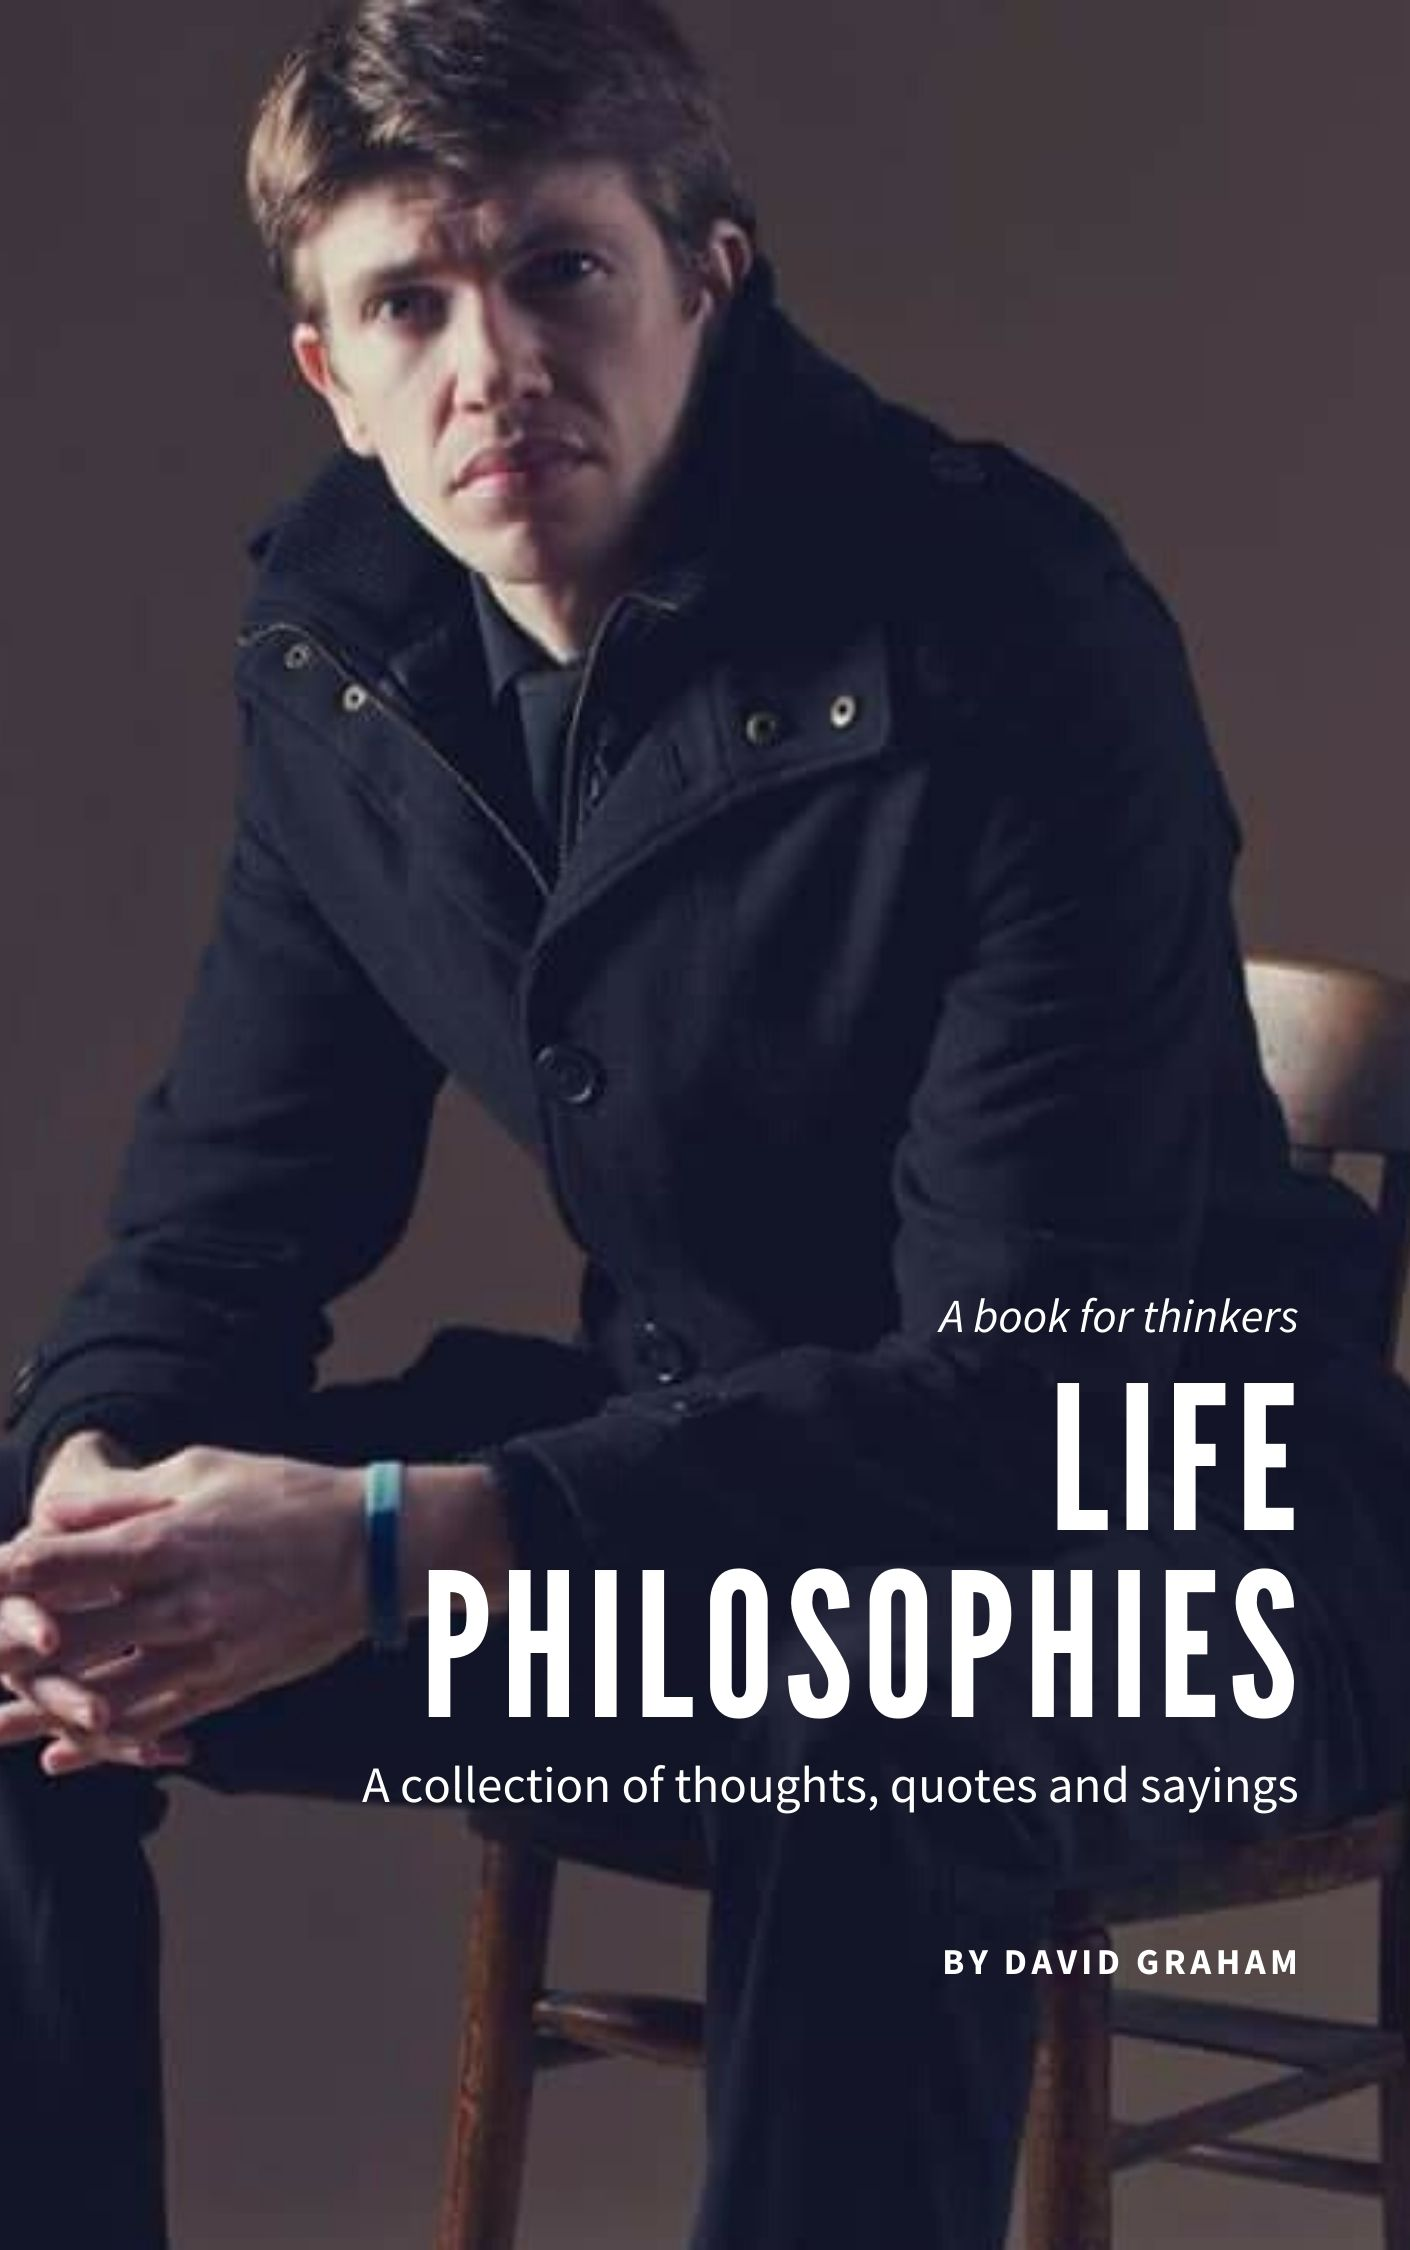 Cover image for post series by David Graham called life philosophies